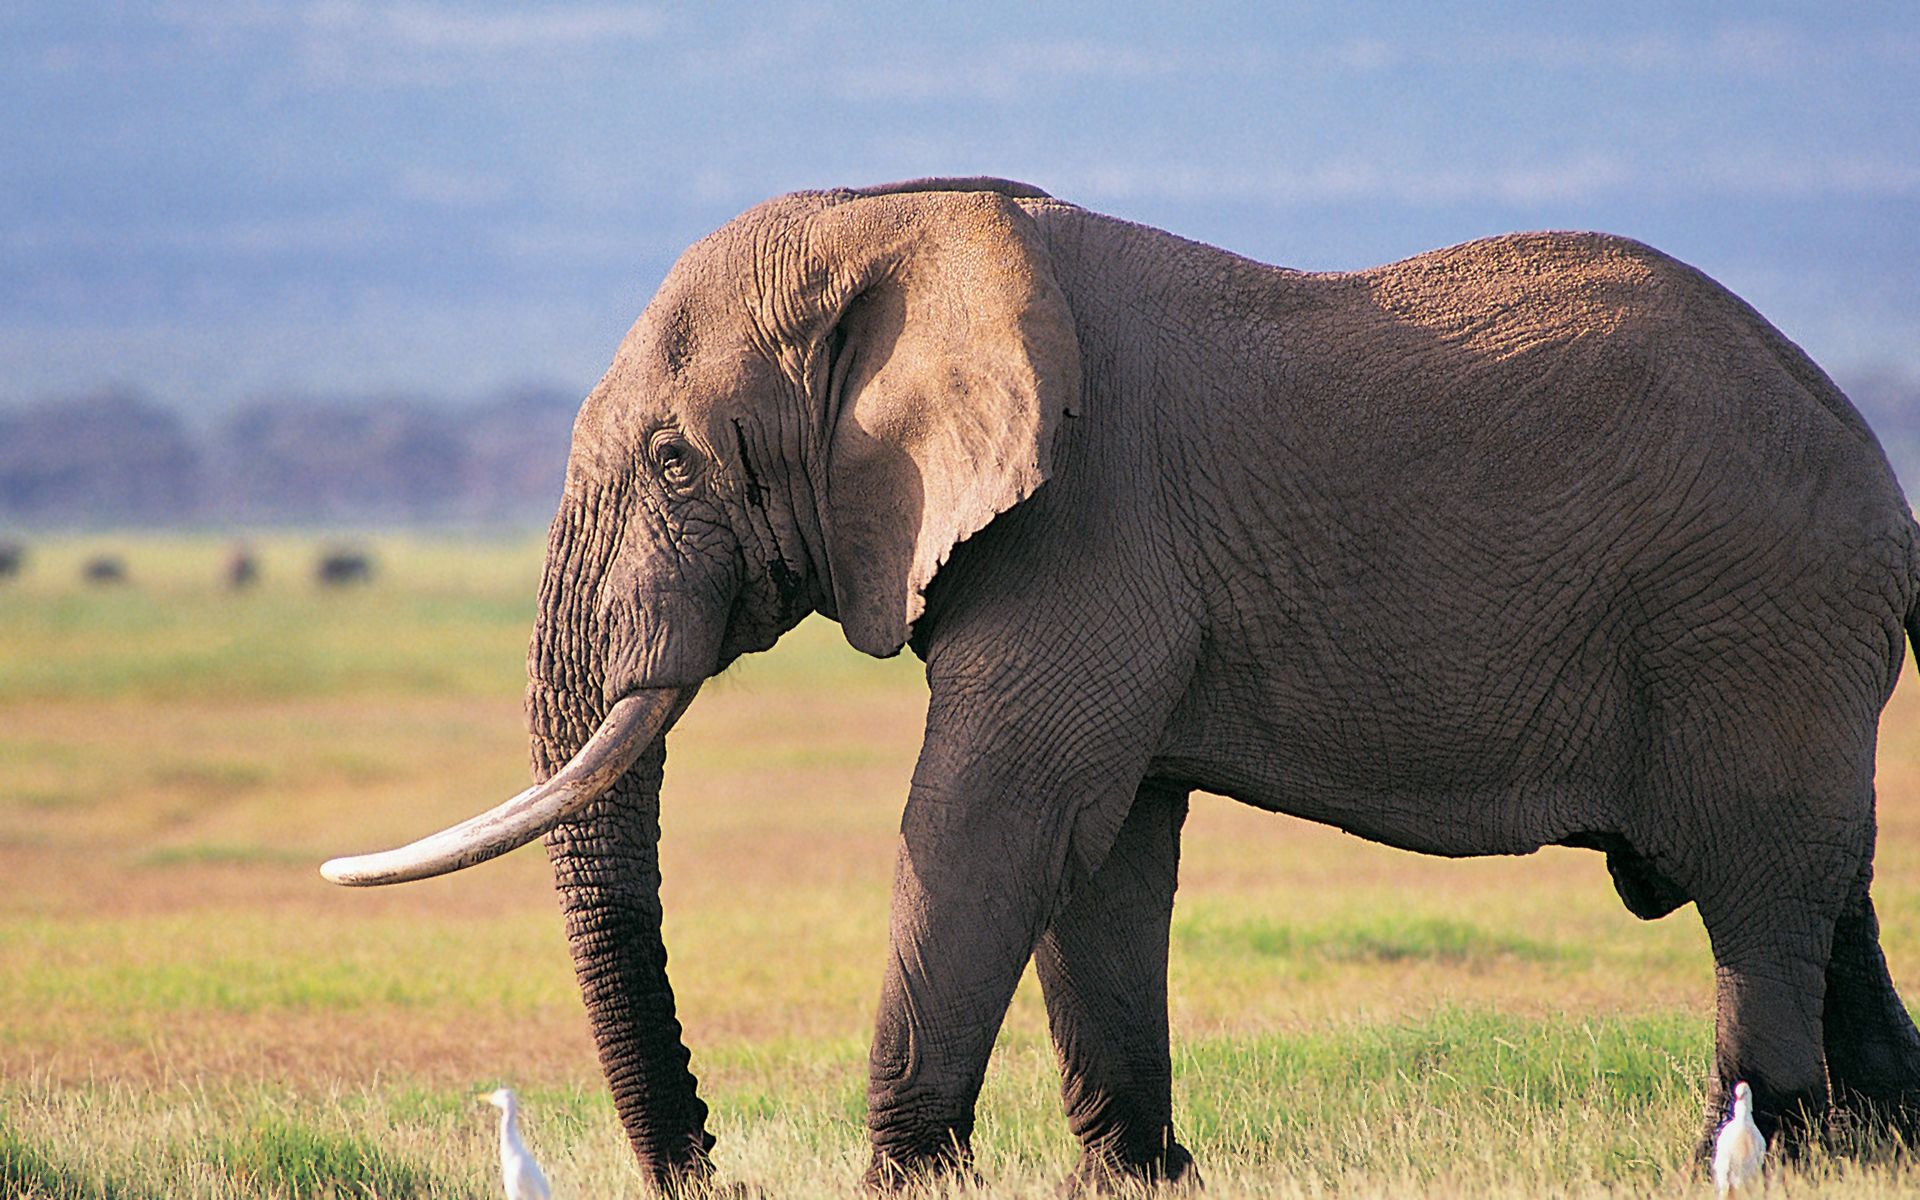 Elephant Art Wallpapers Pictures Animals Elephants